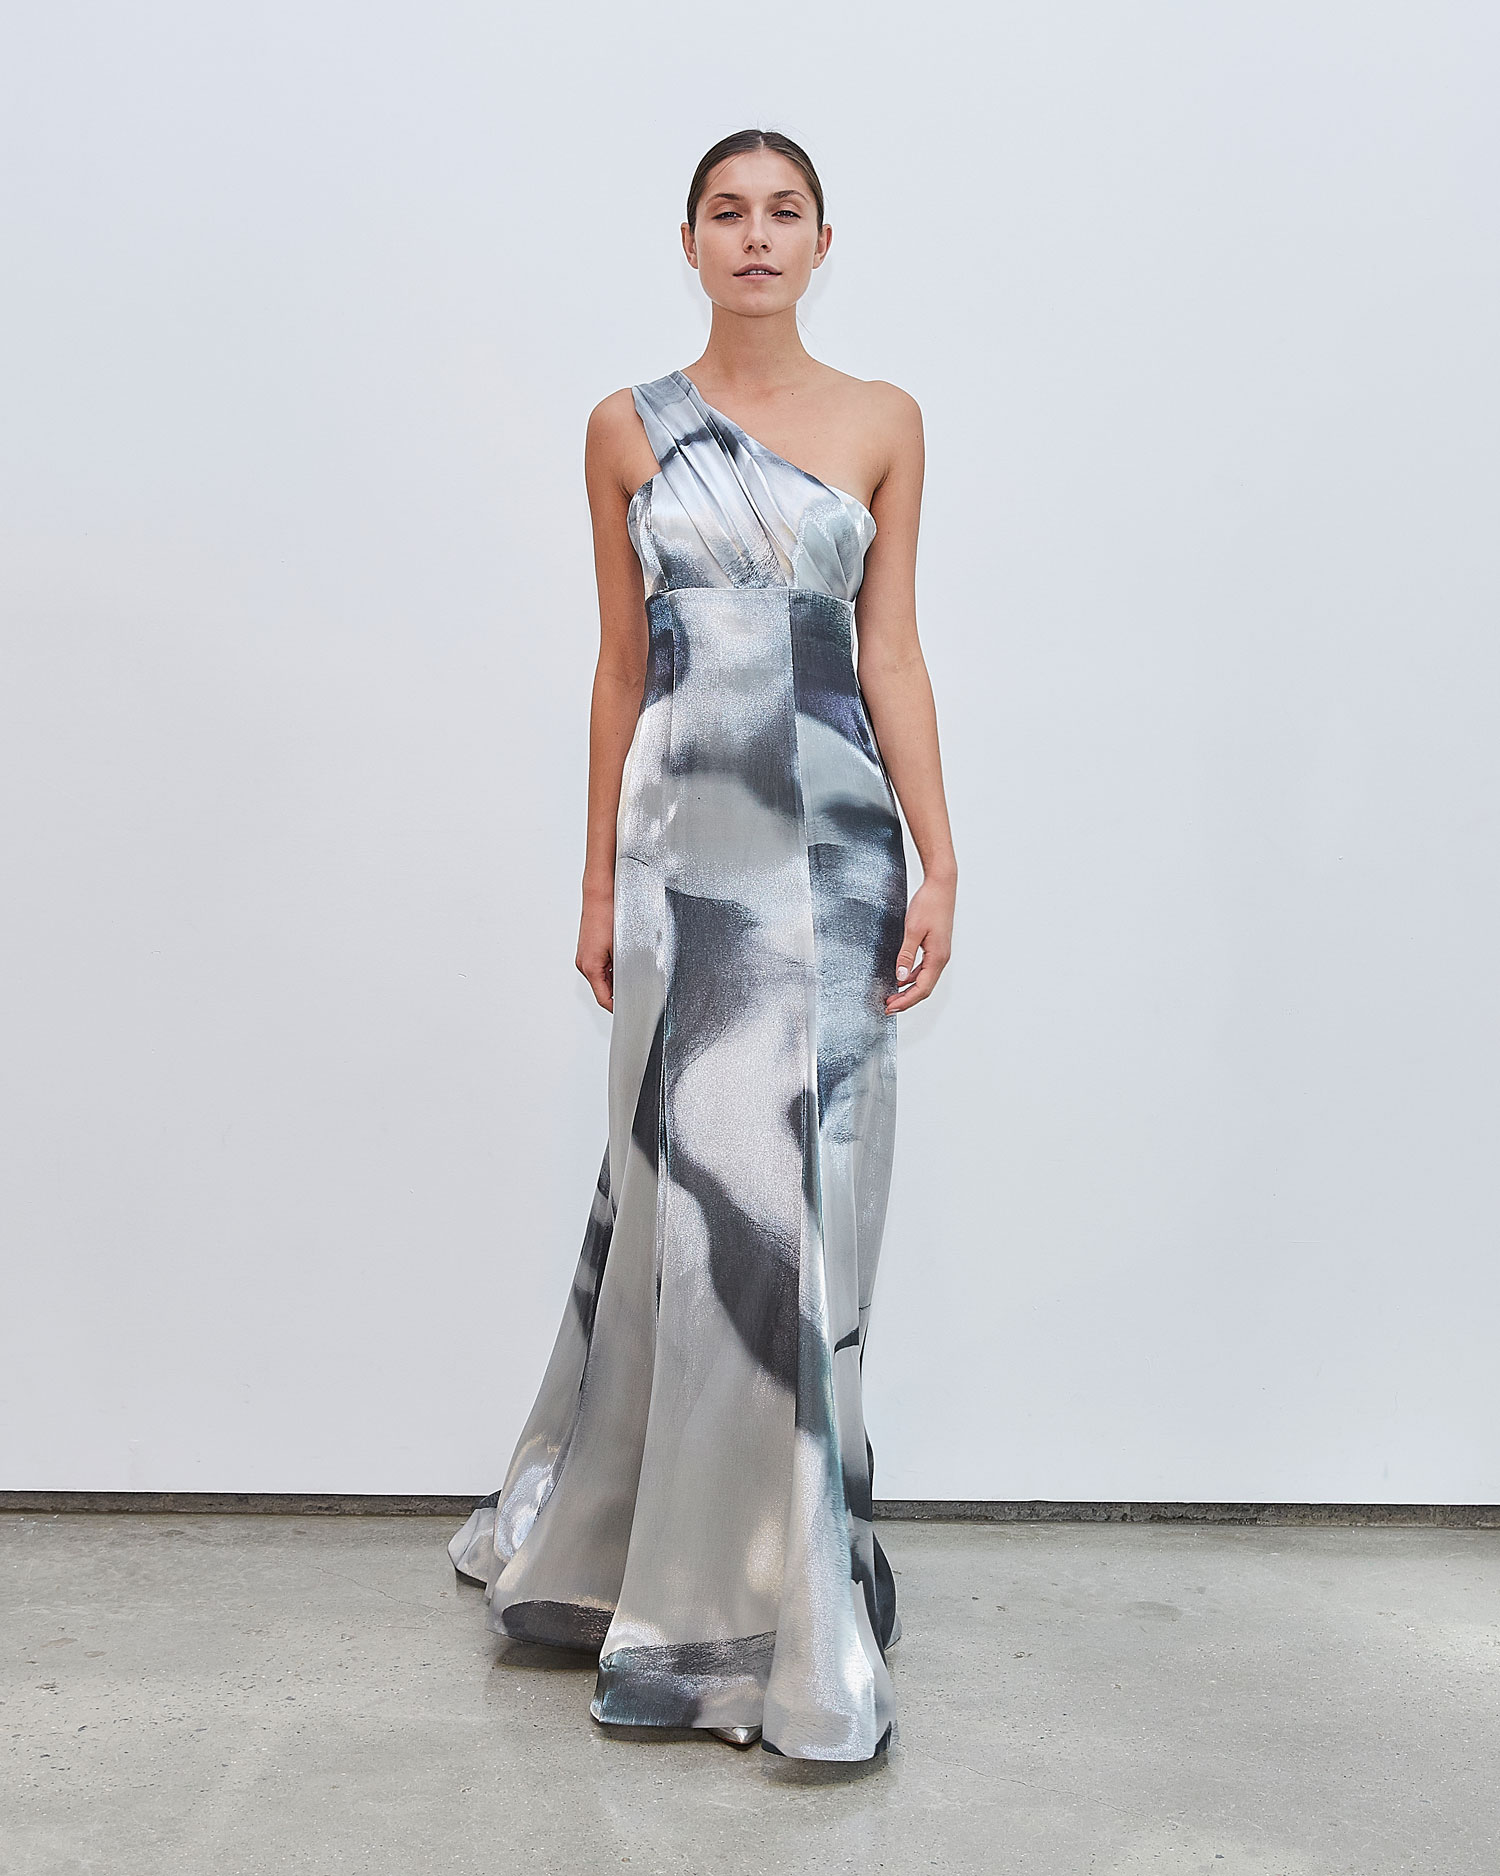 Francesca Miranda Fall 2020 bridal collection Gray wedding dress one shoulder grey print colorful gown